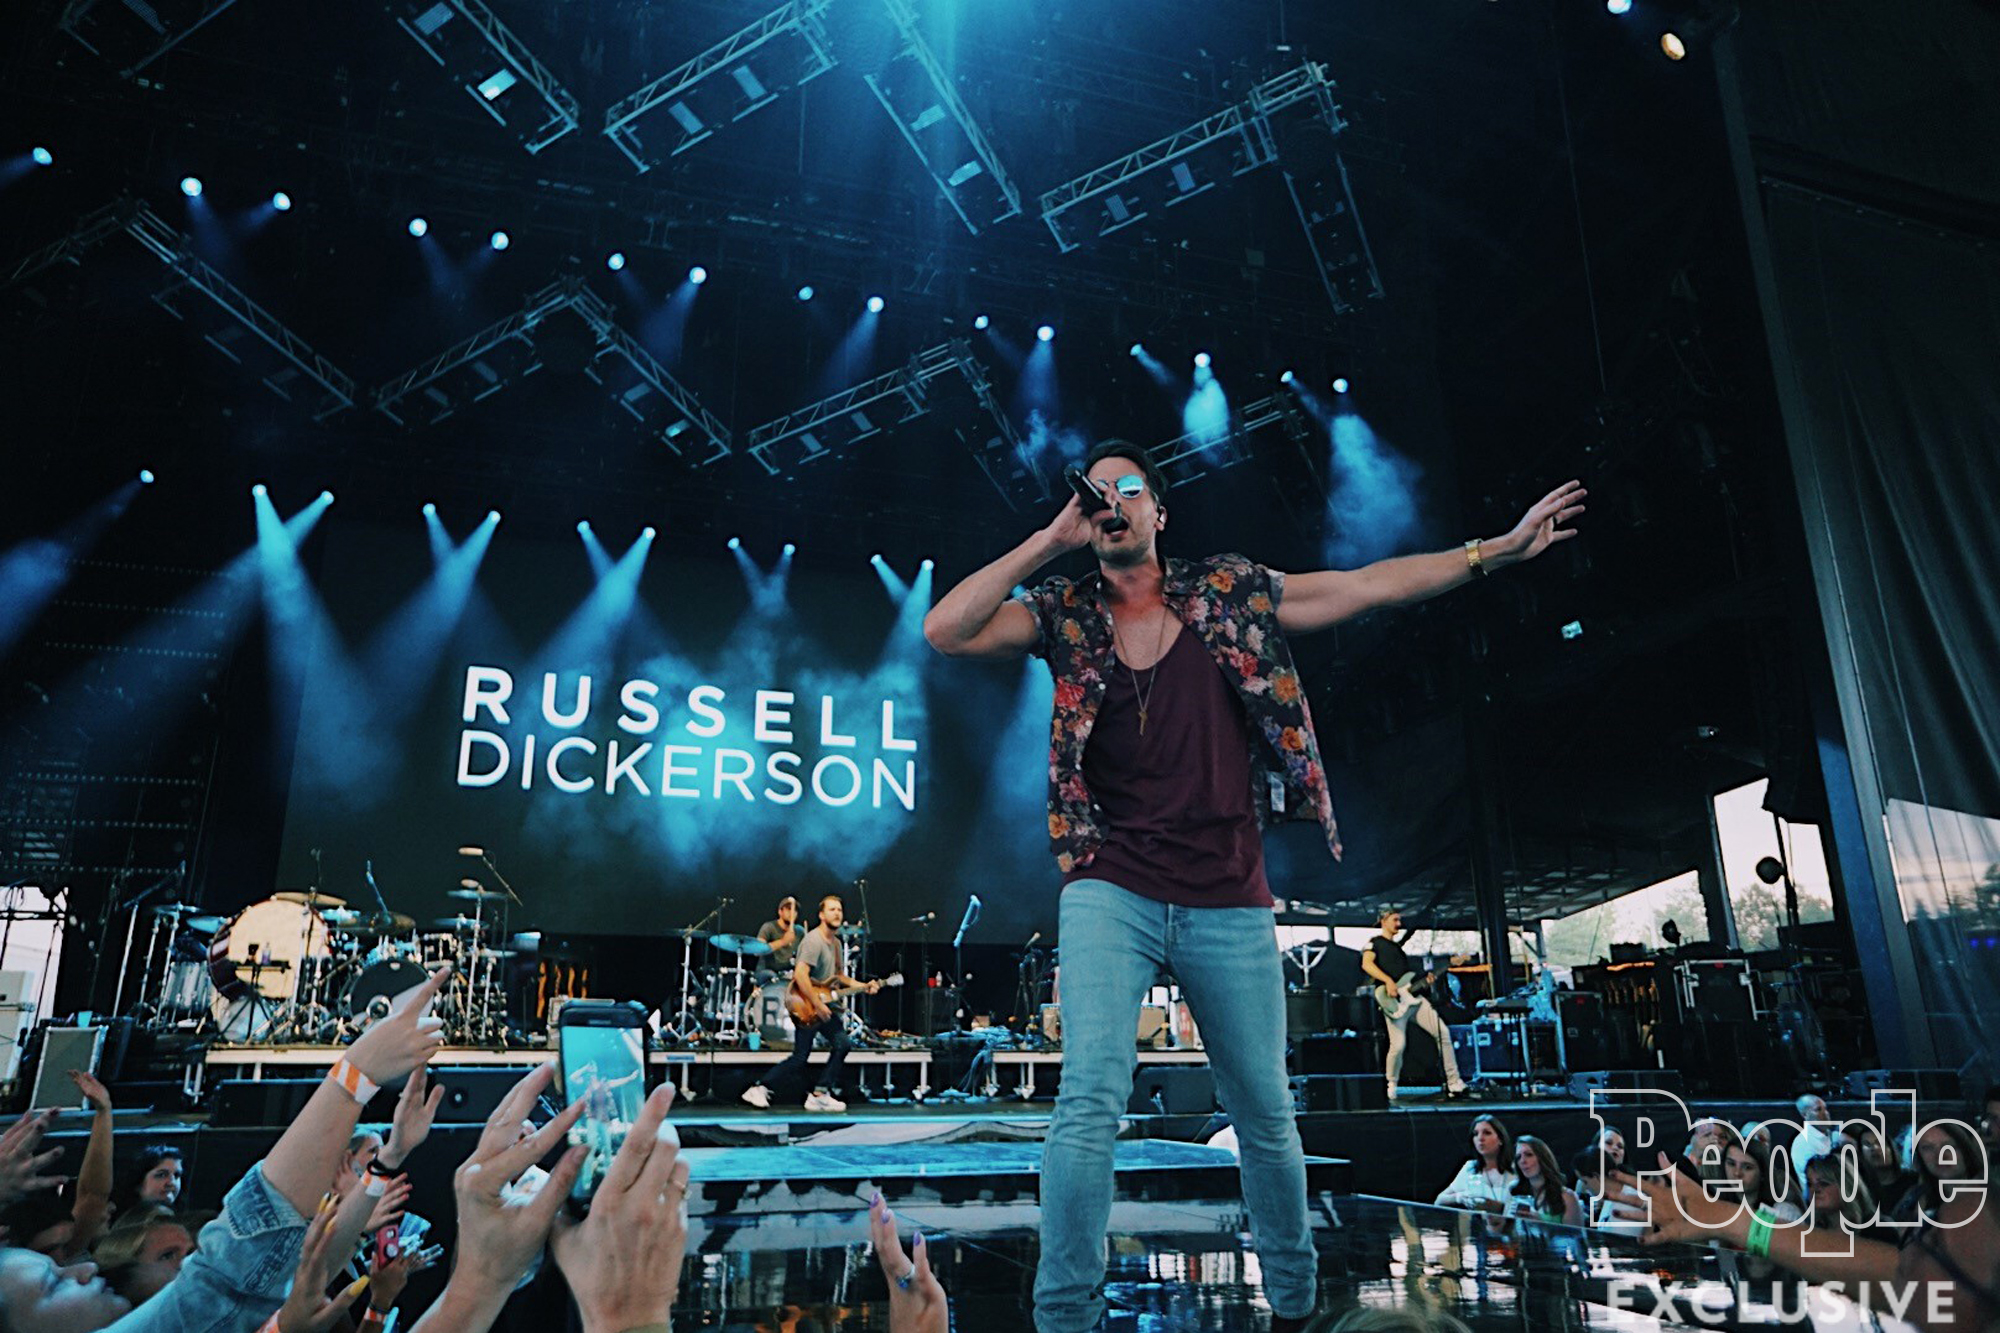 Russell Dickerson - credit is Kailey Dickeson